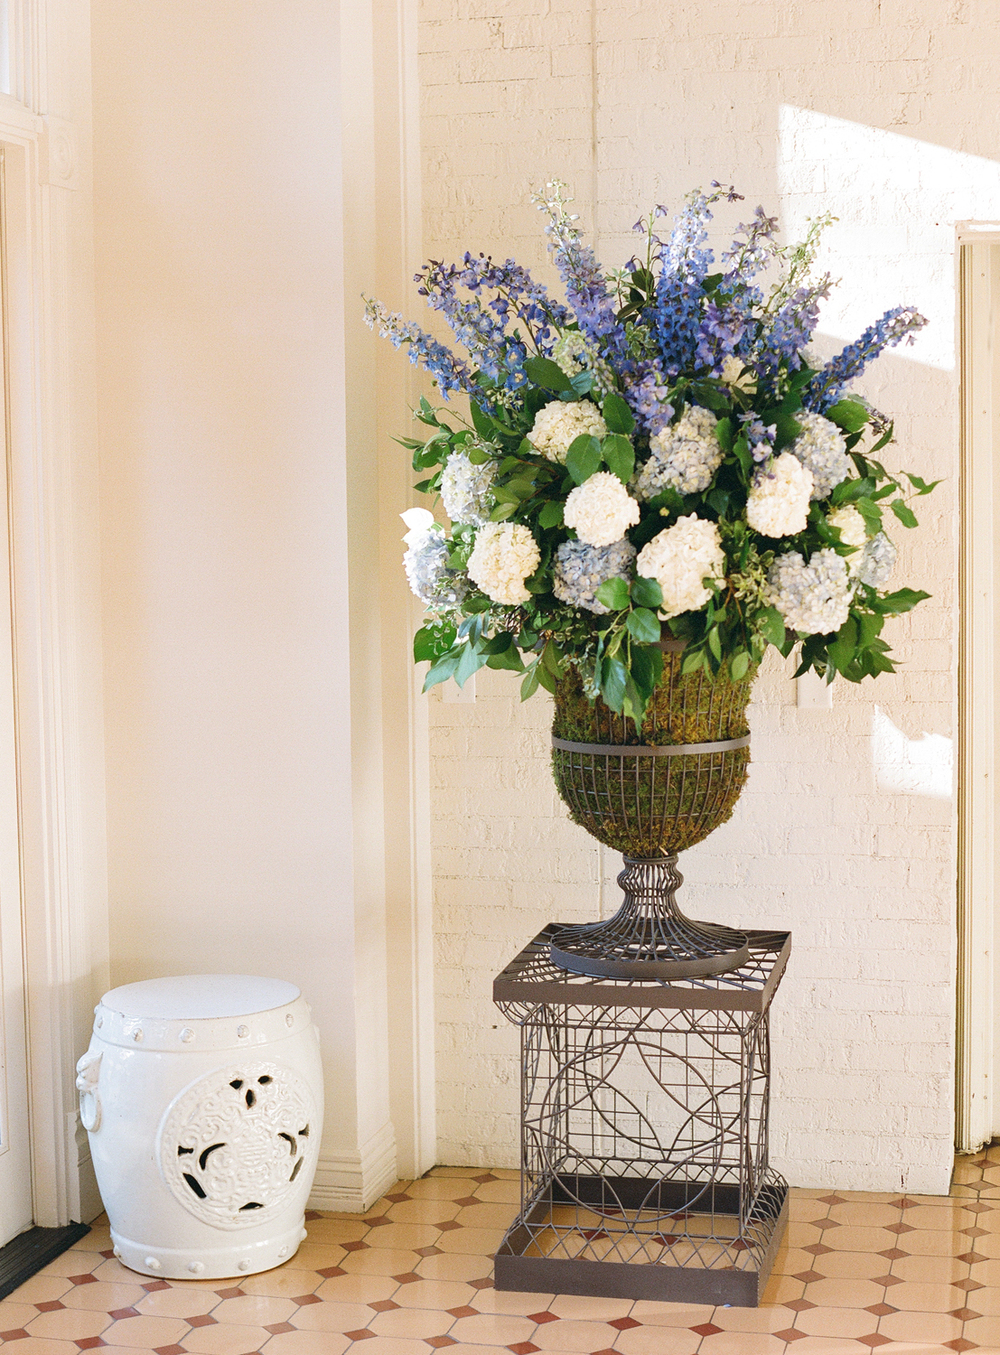 Large blue and white hydrangea arrangement